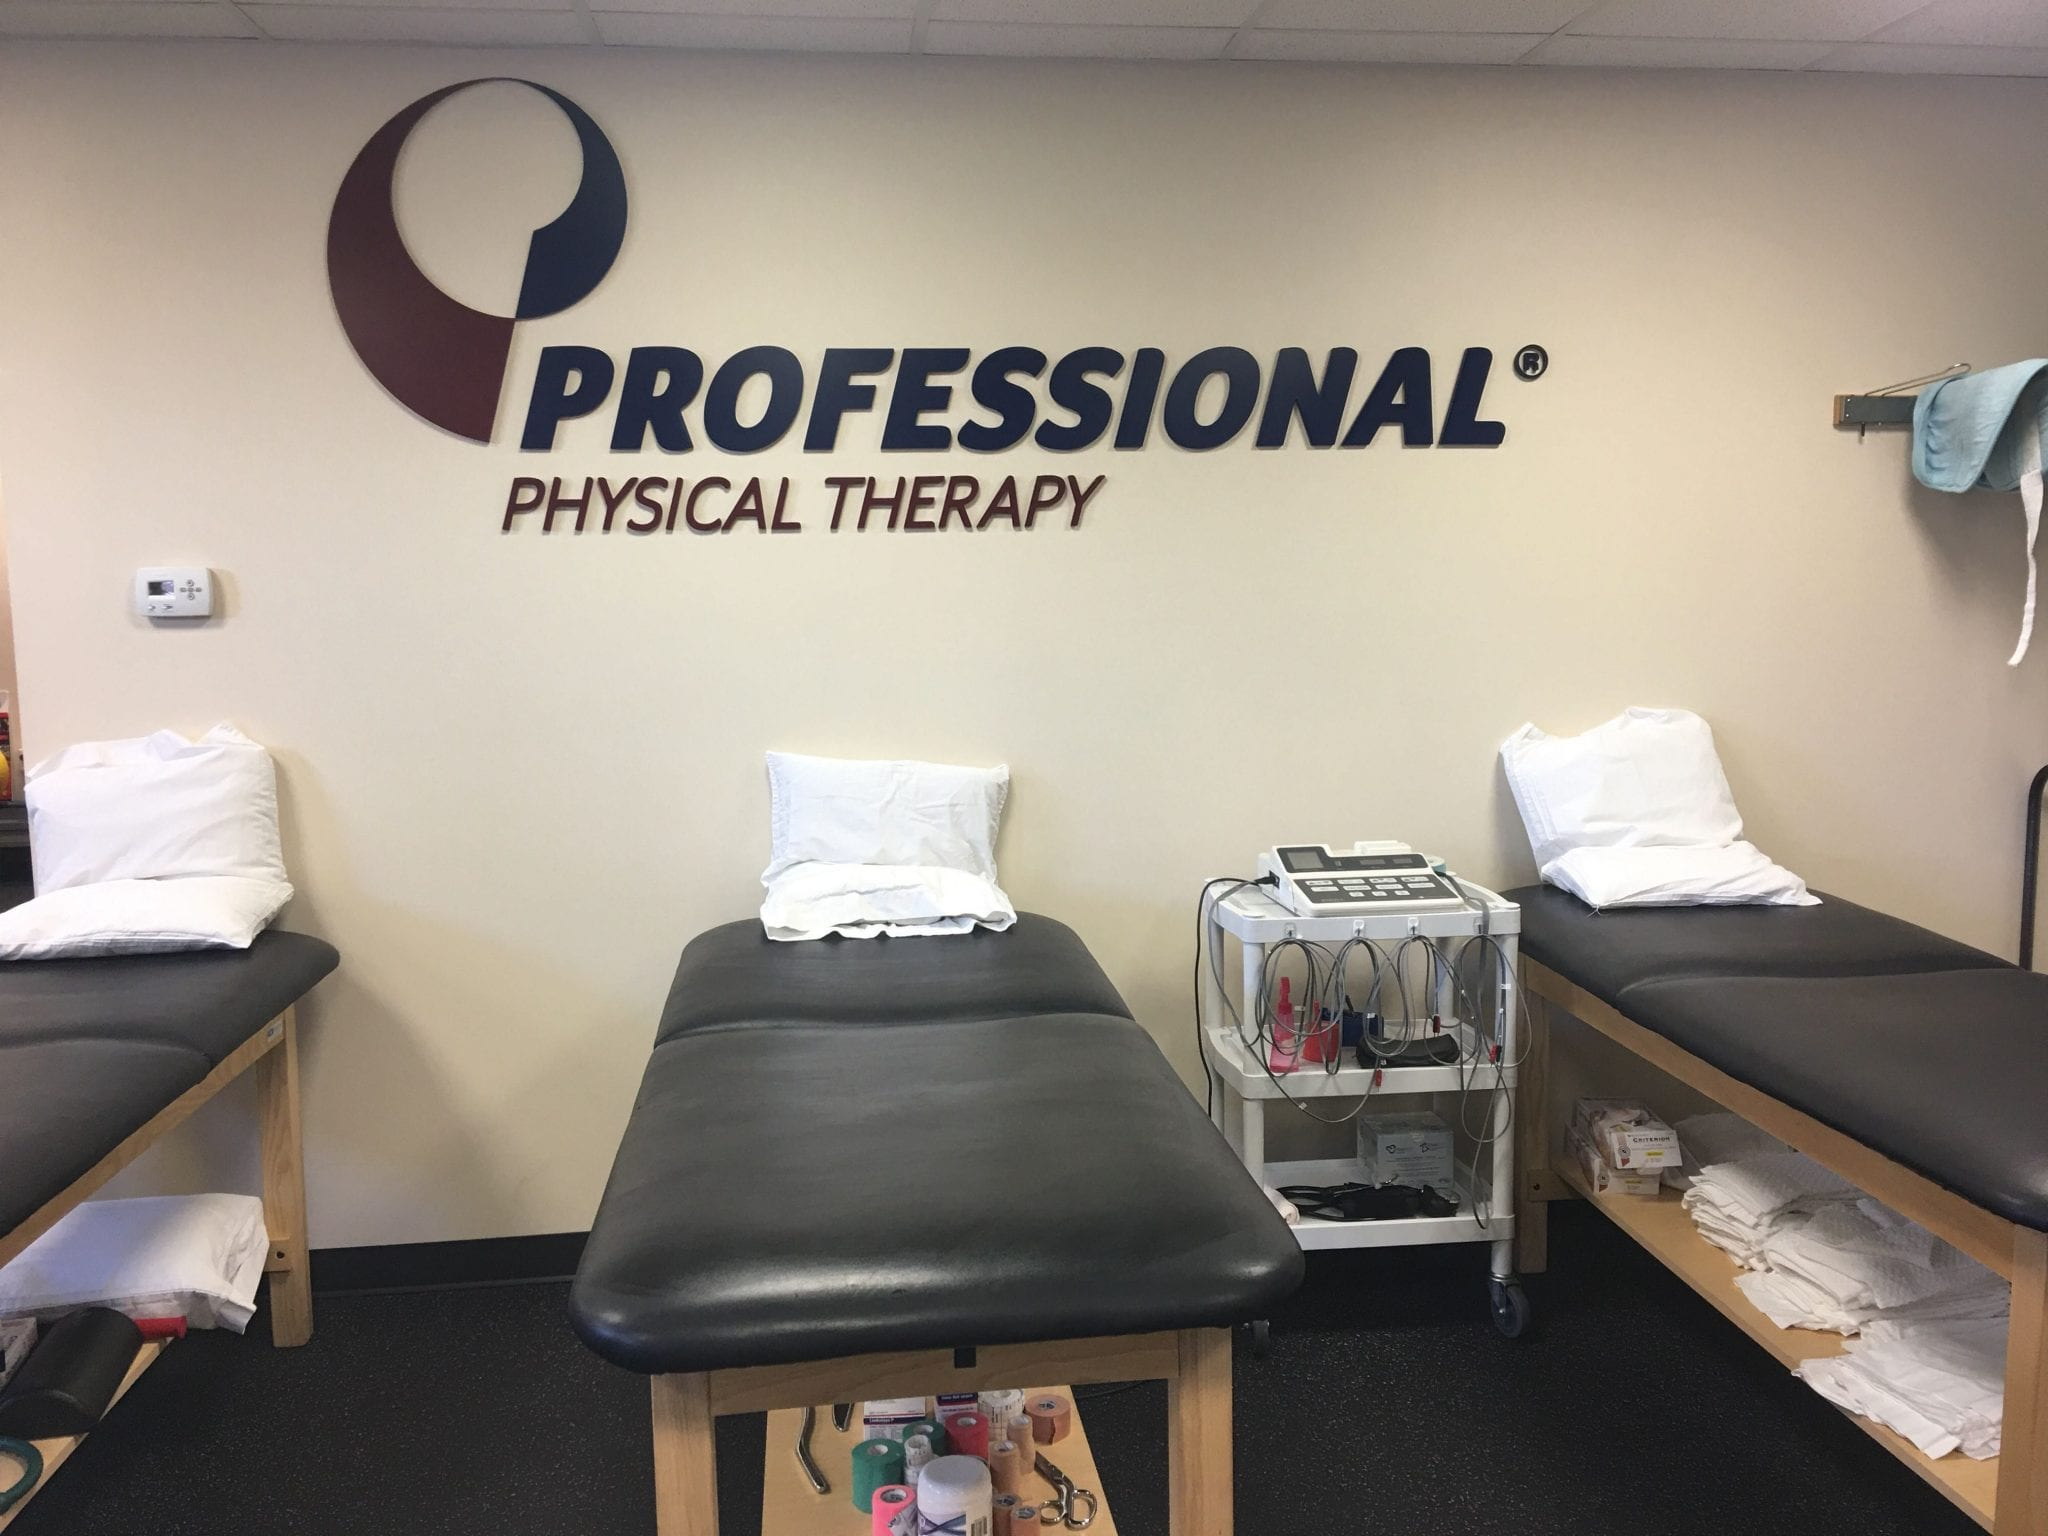 Here is a photo of stretch beds at our physical therapy clinic in Nutley, New Jersey at Belleville.